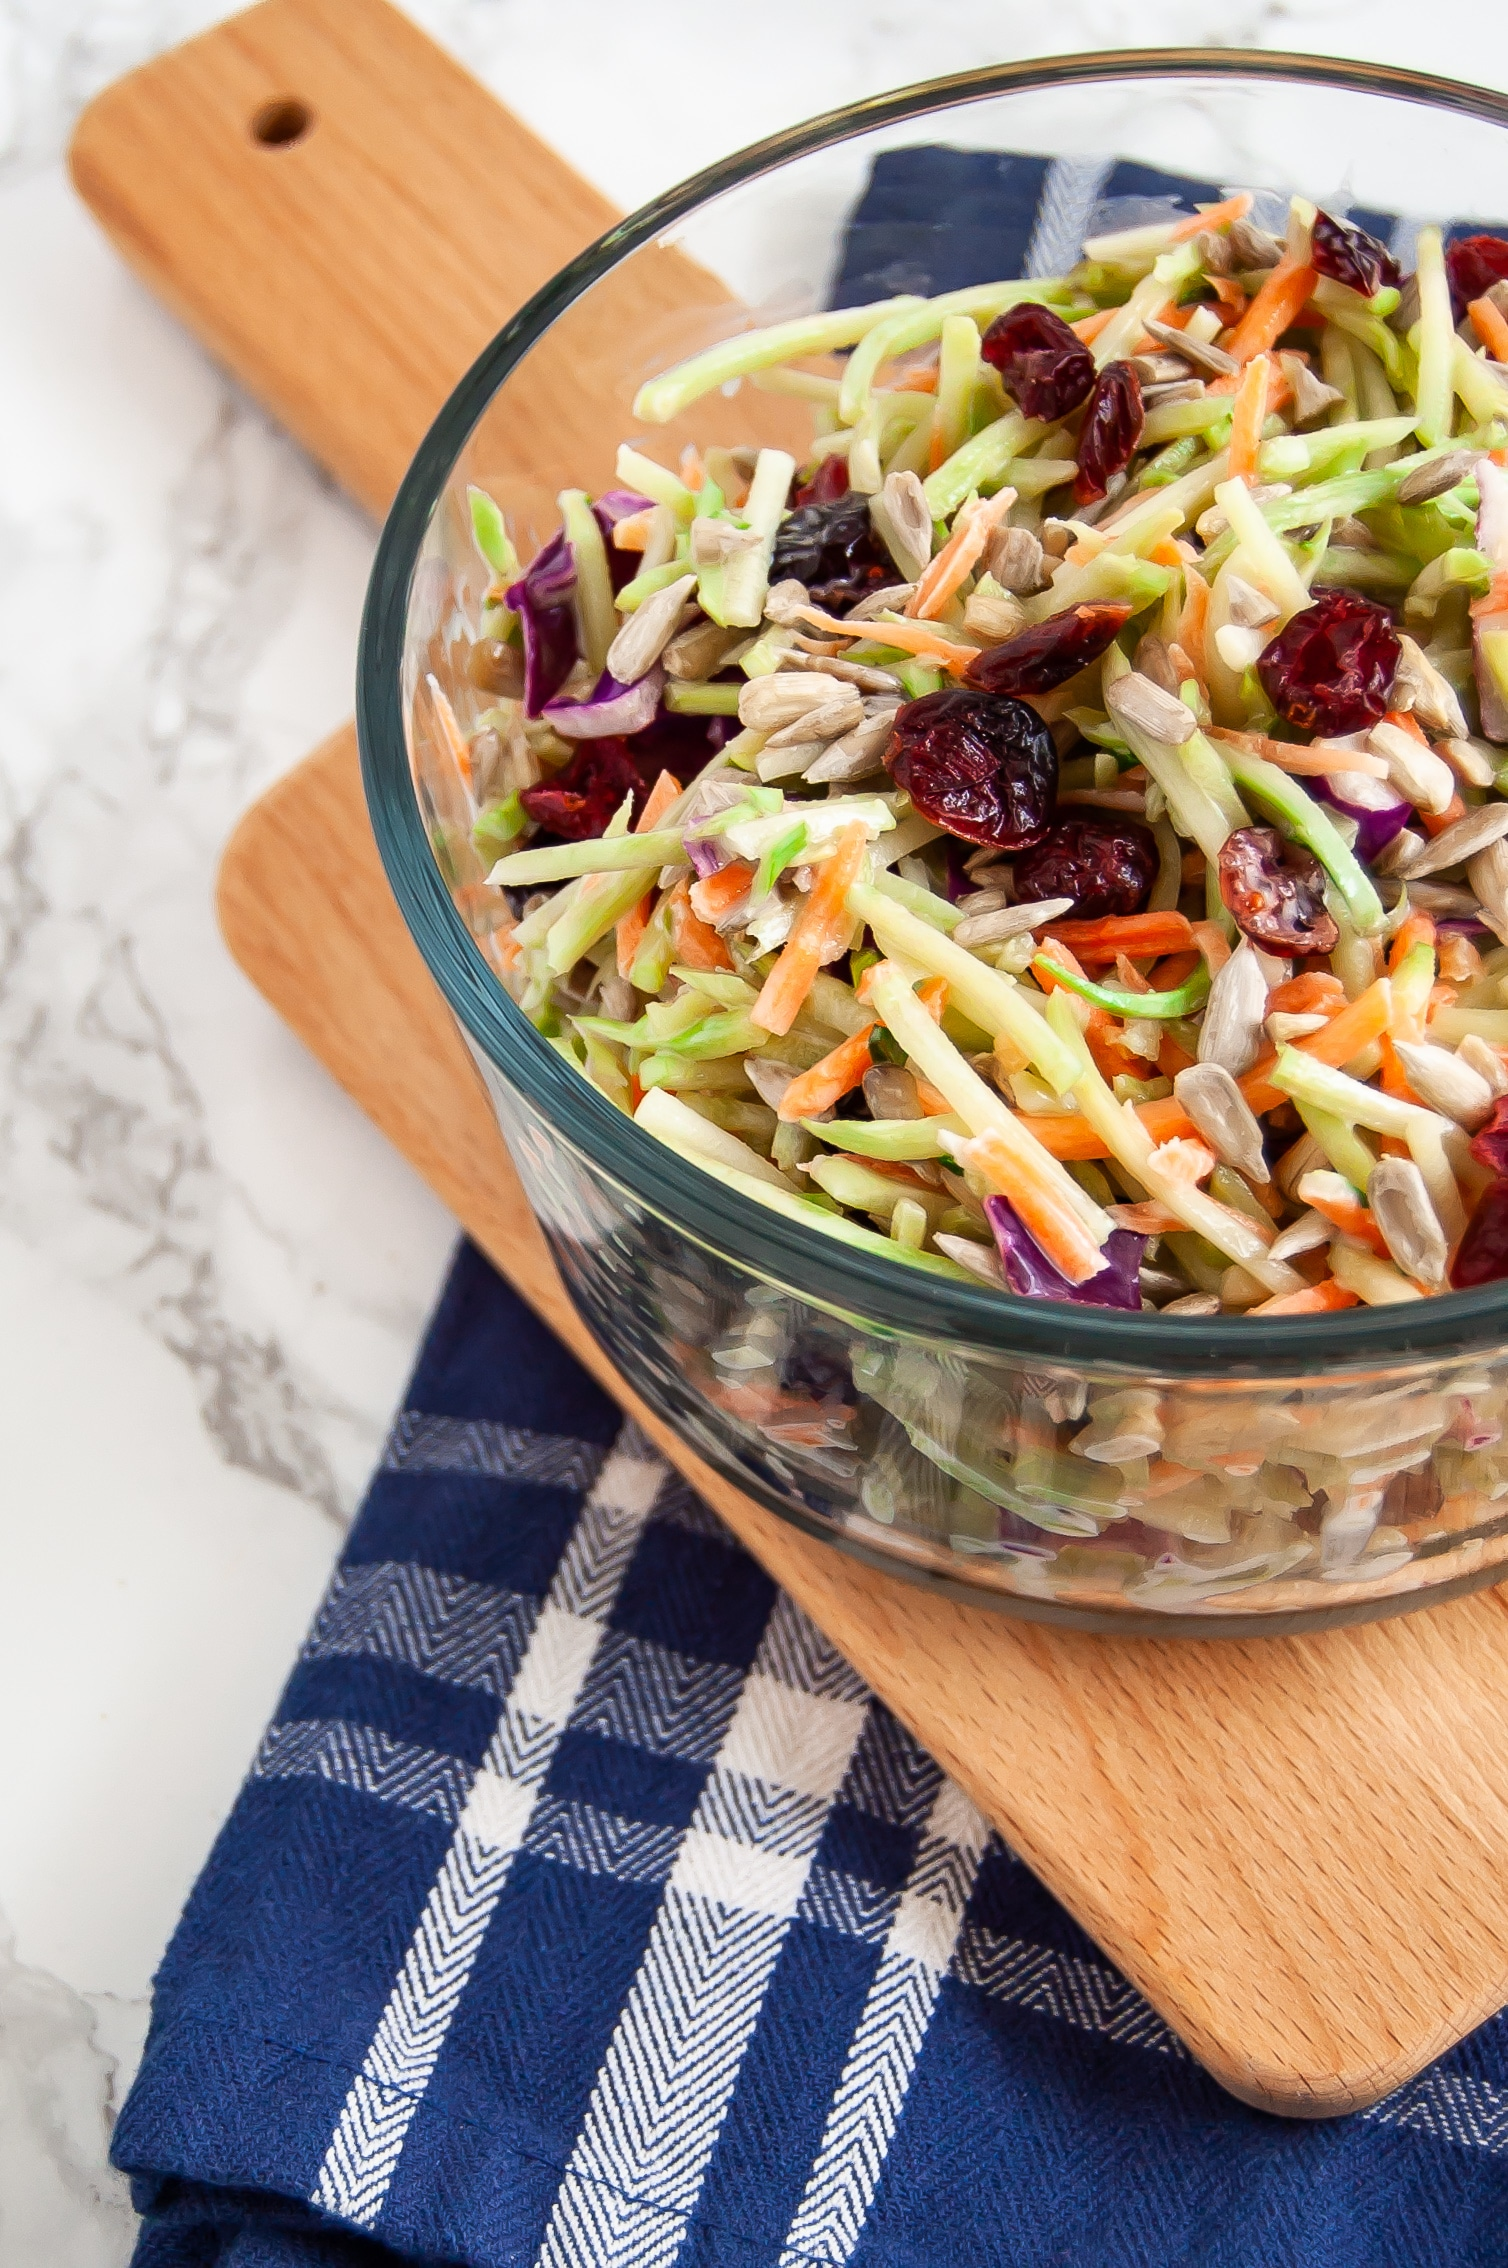 Cranberry crunch broccoli slaw is an easy, flavorful, allergy-friendly side dish recipe for summer barbecues.